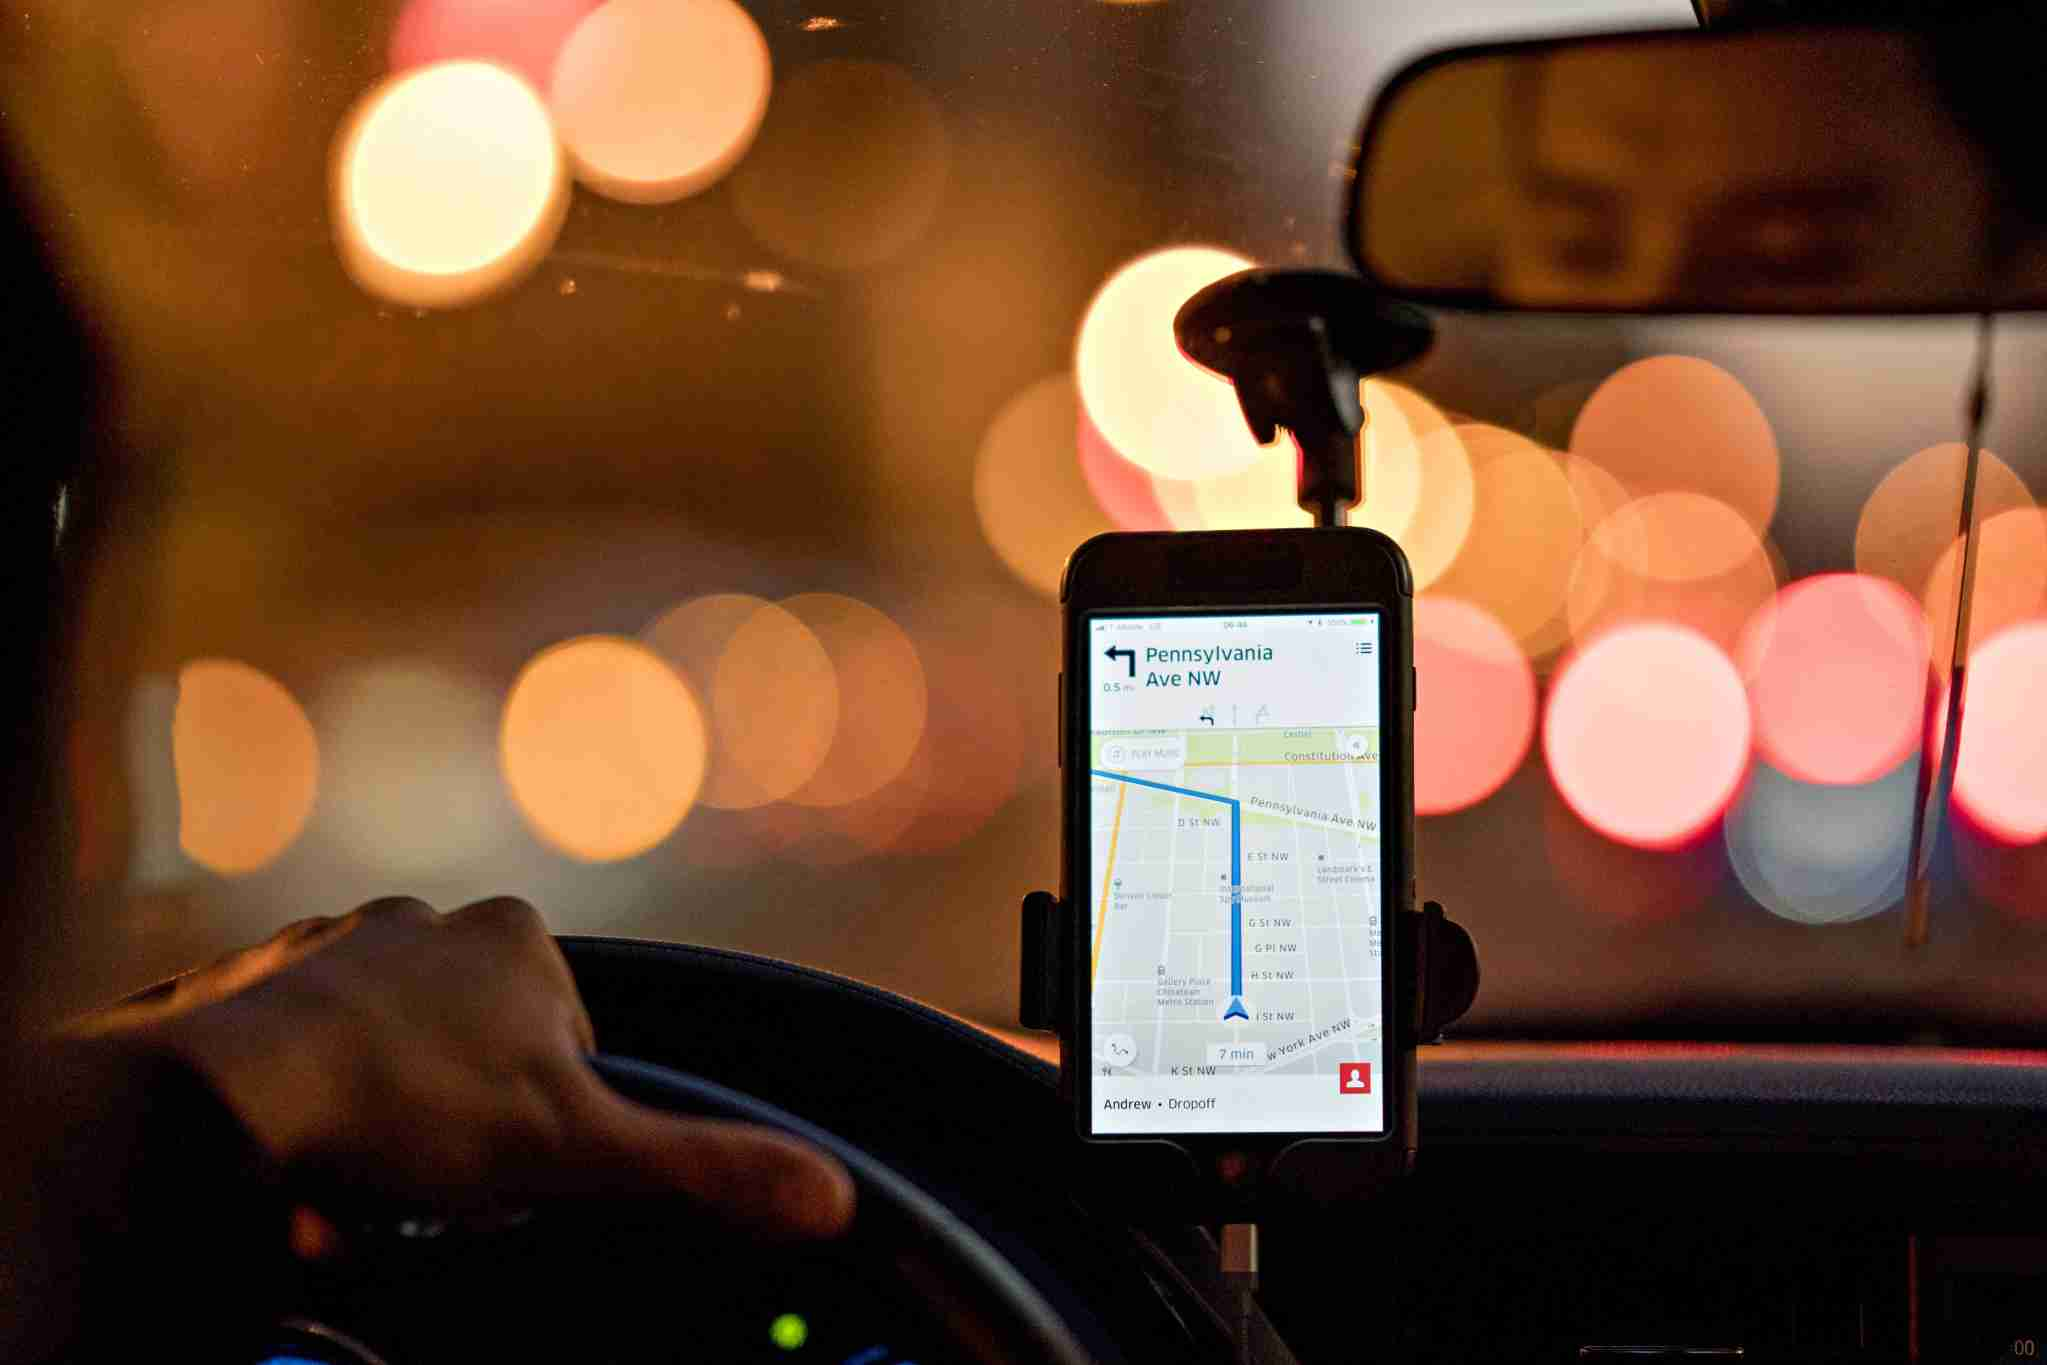 A driver uses an Uber Technologies Inc. car service app on a mobile device while driving in Washington, D.C., U.S., on Wednesday, Nov. 29, 2017. Uber Technologies Inc.s net loss widened to $1.46 billion in the third quarter, according to people with knowledge of the matter, as the ride-hailing leader struggled to fend off competition, legal challenges and regulatory scrutiny. Photographer: Andrew Harrer/Bloomberg via Getty Images